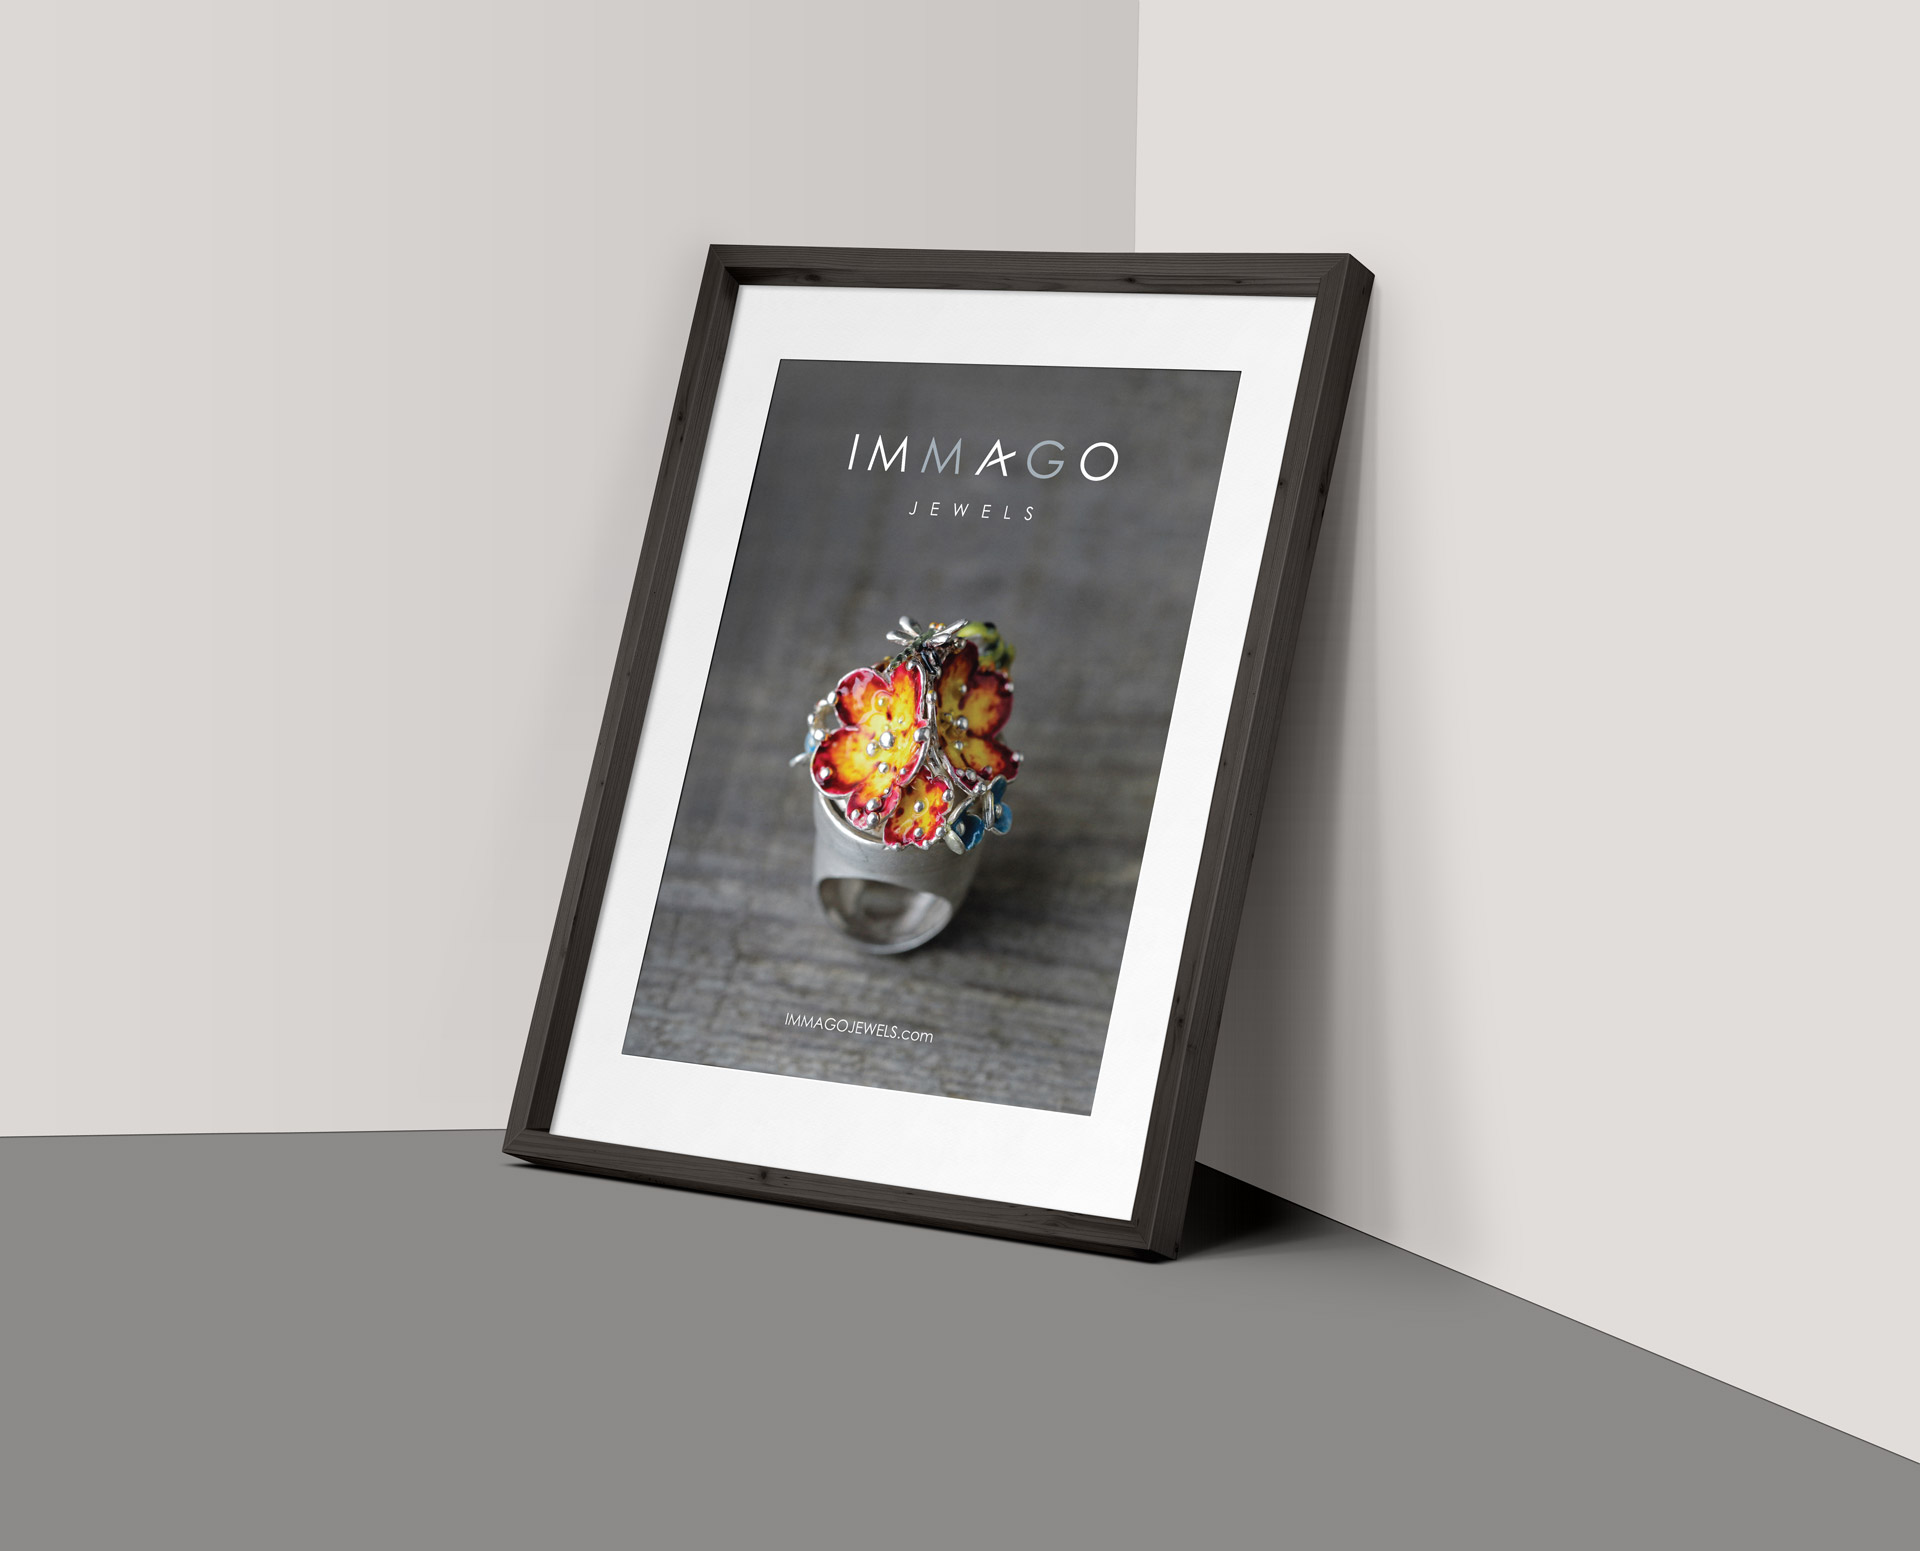 immago_poster